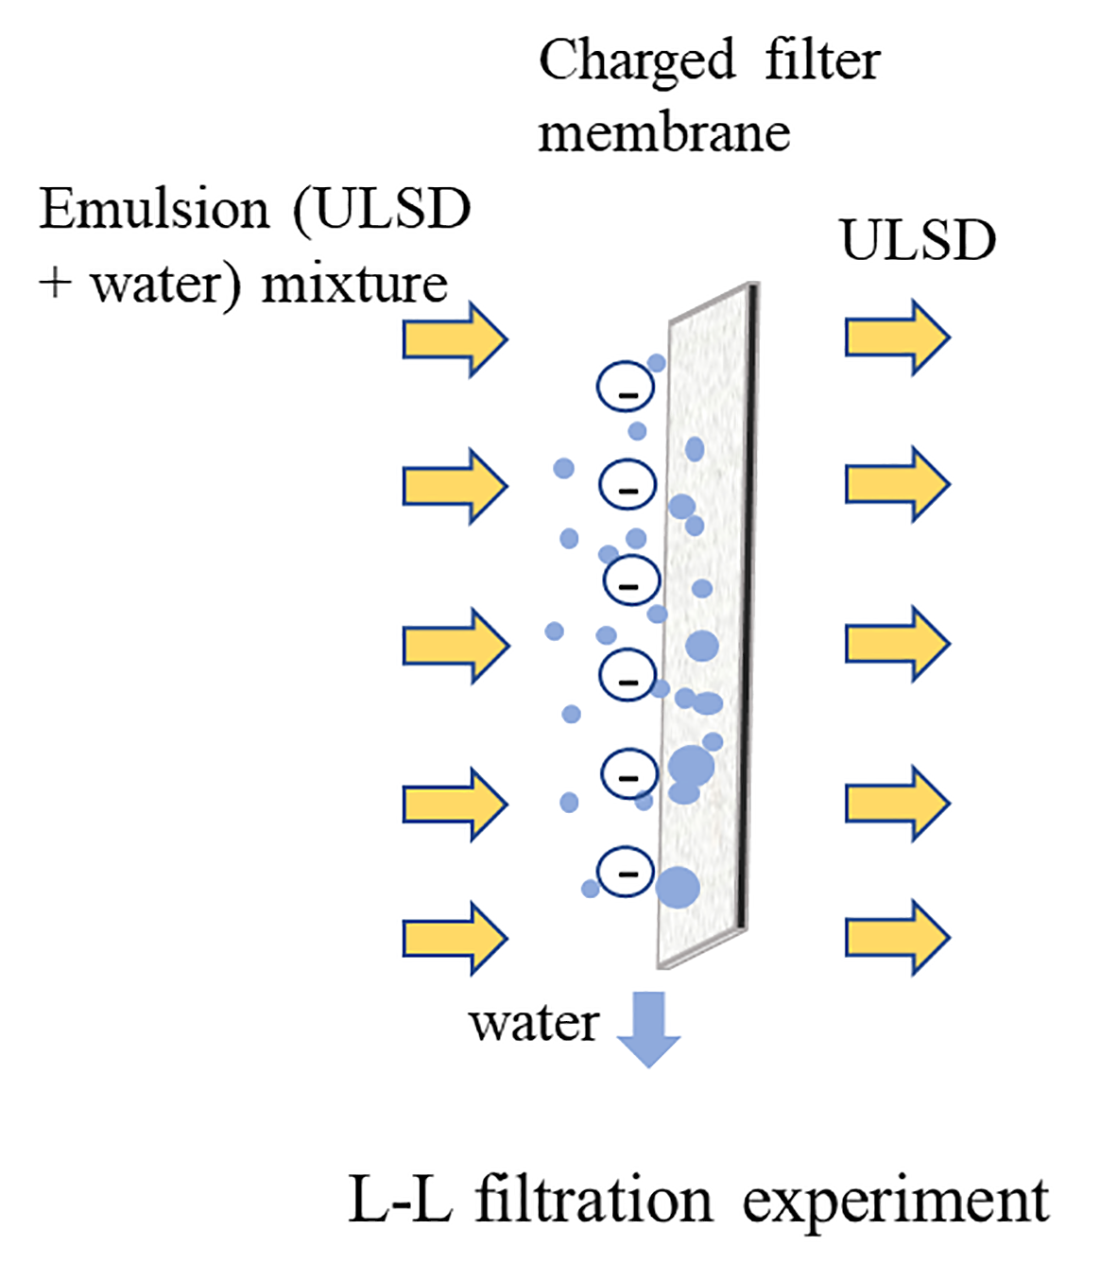 Illustration of charged filter membrane